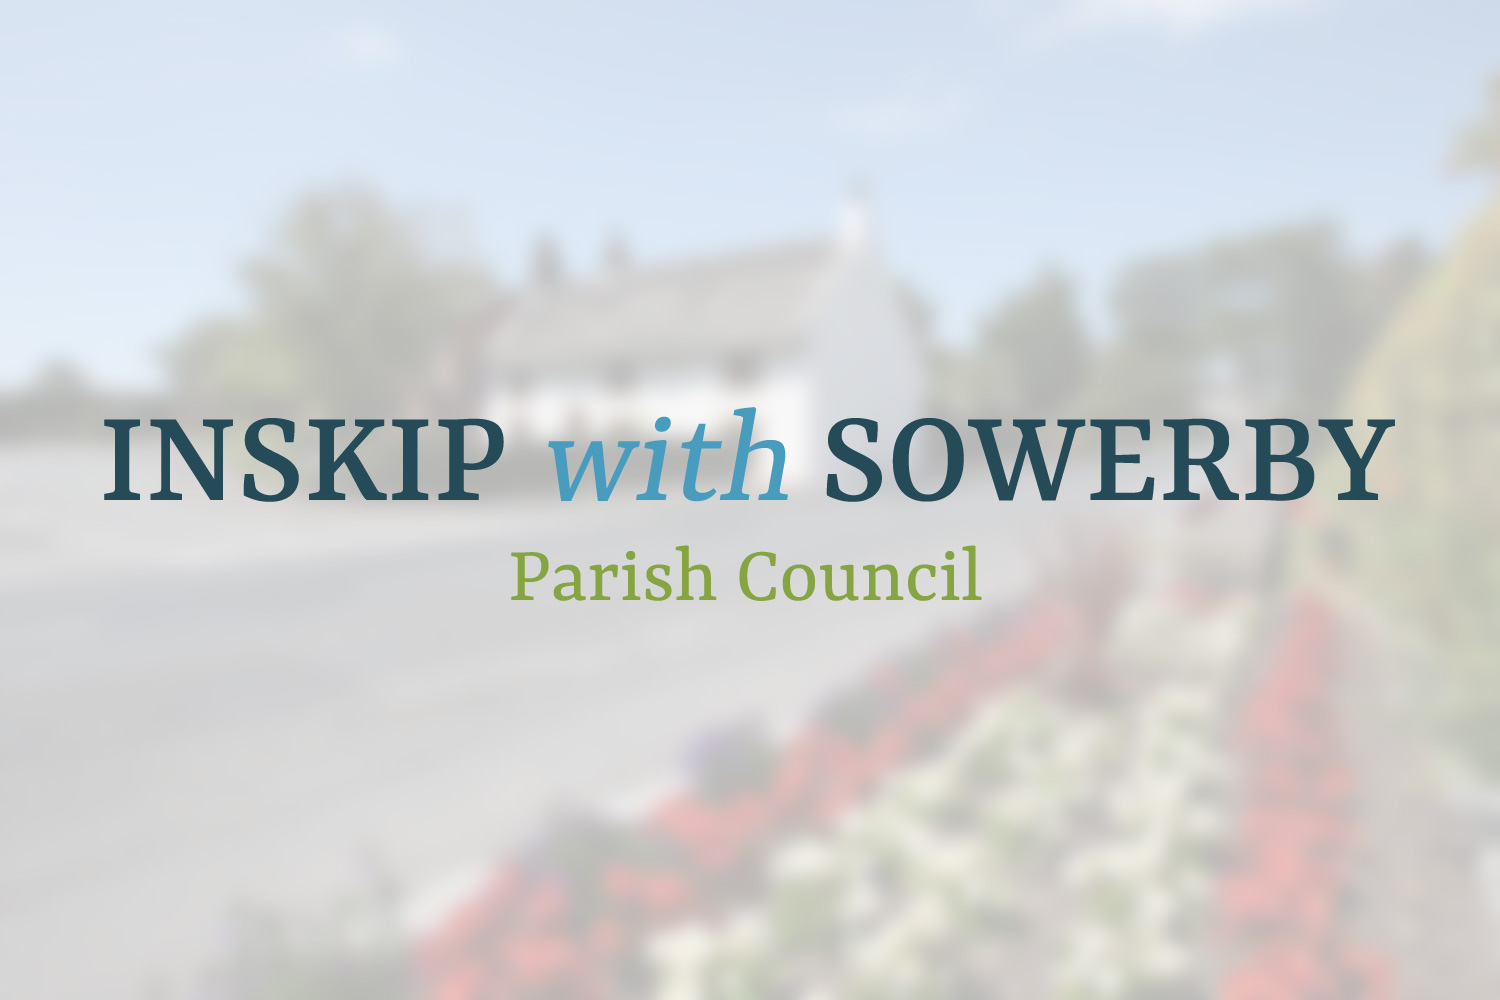 March Parish Council Meeting – Agenda